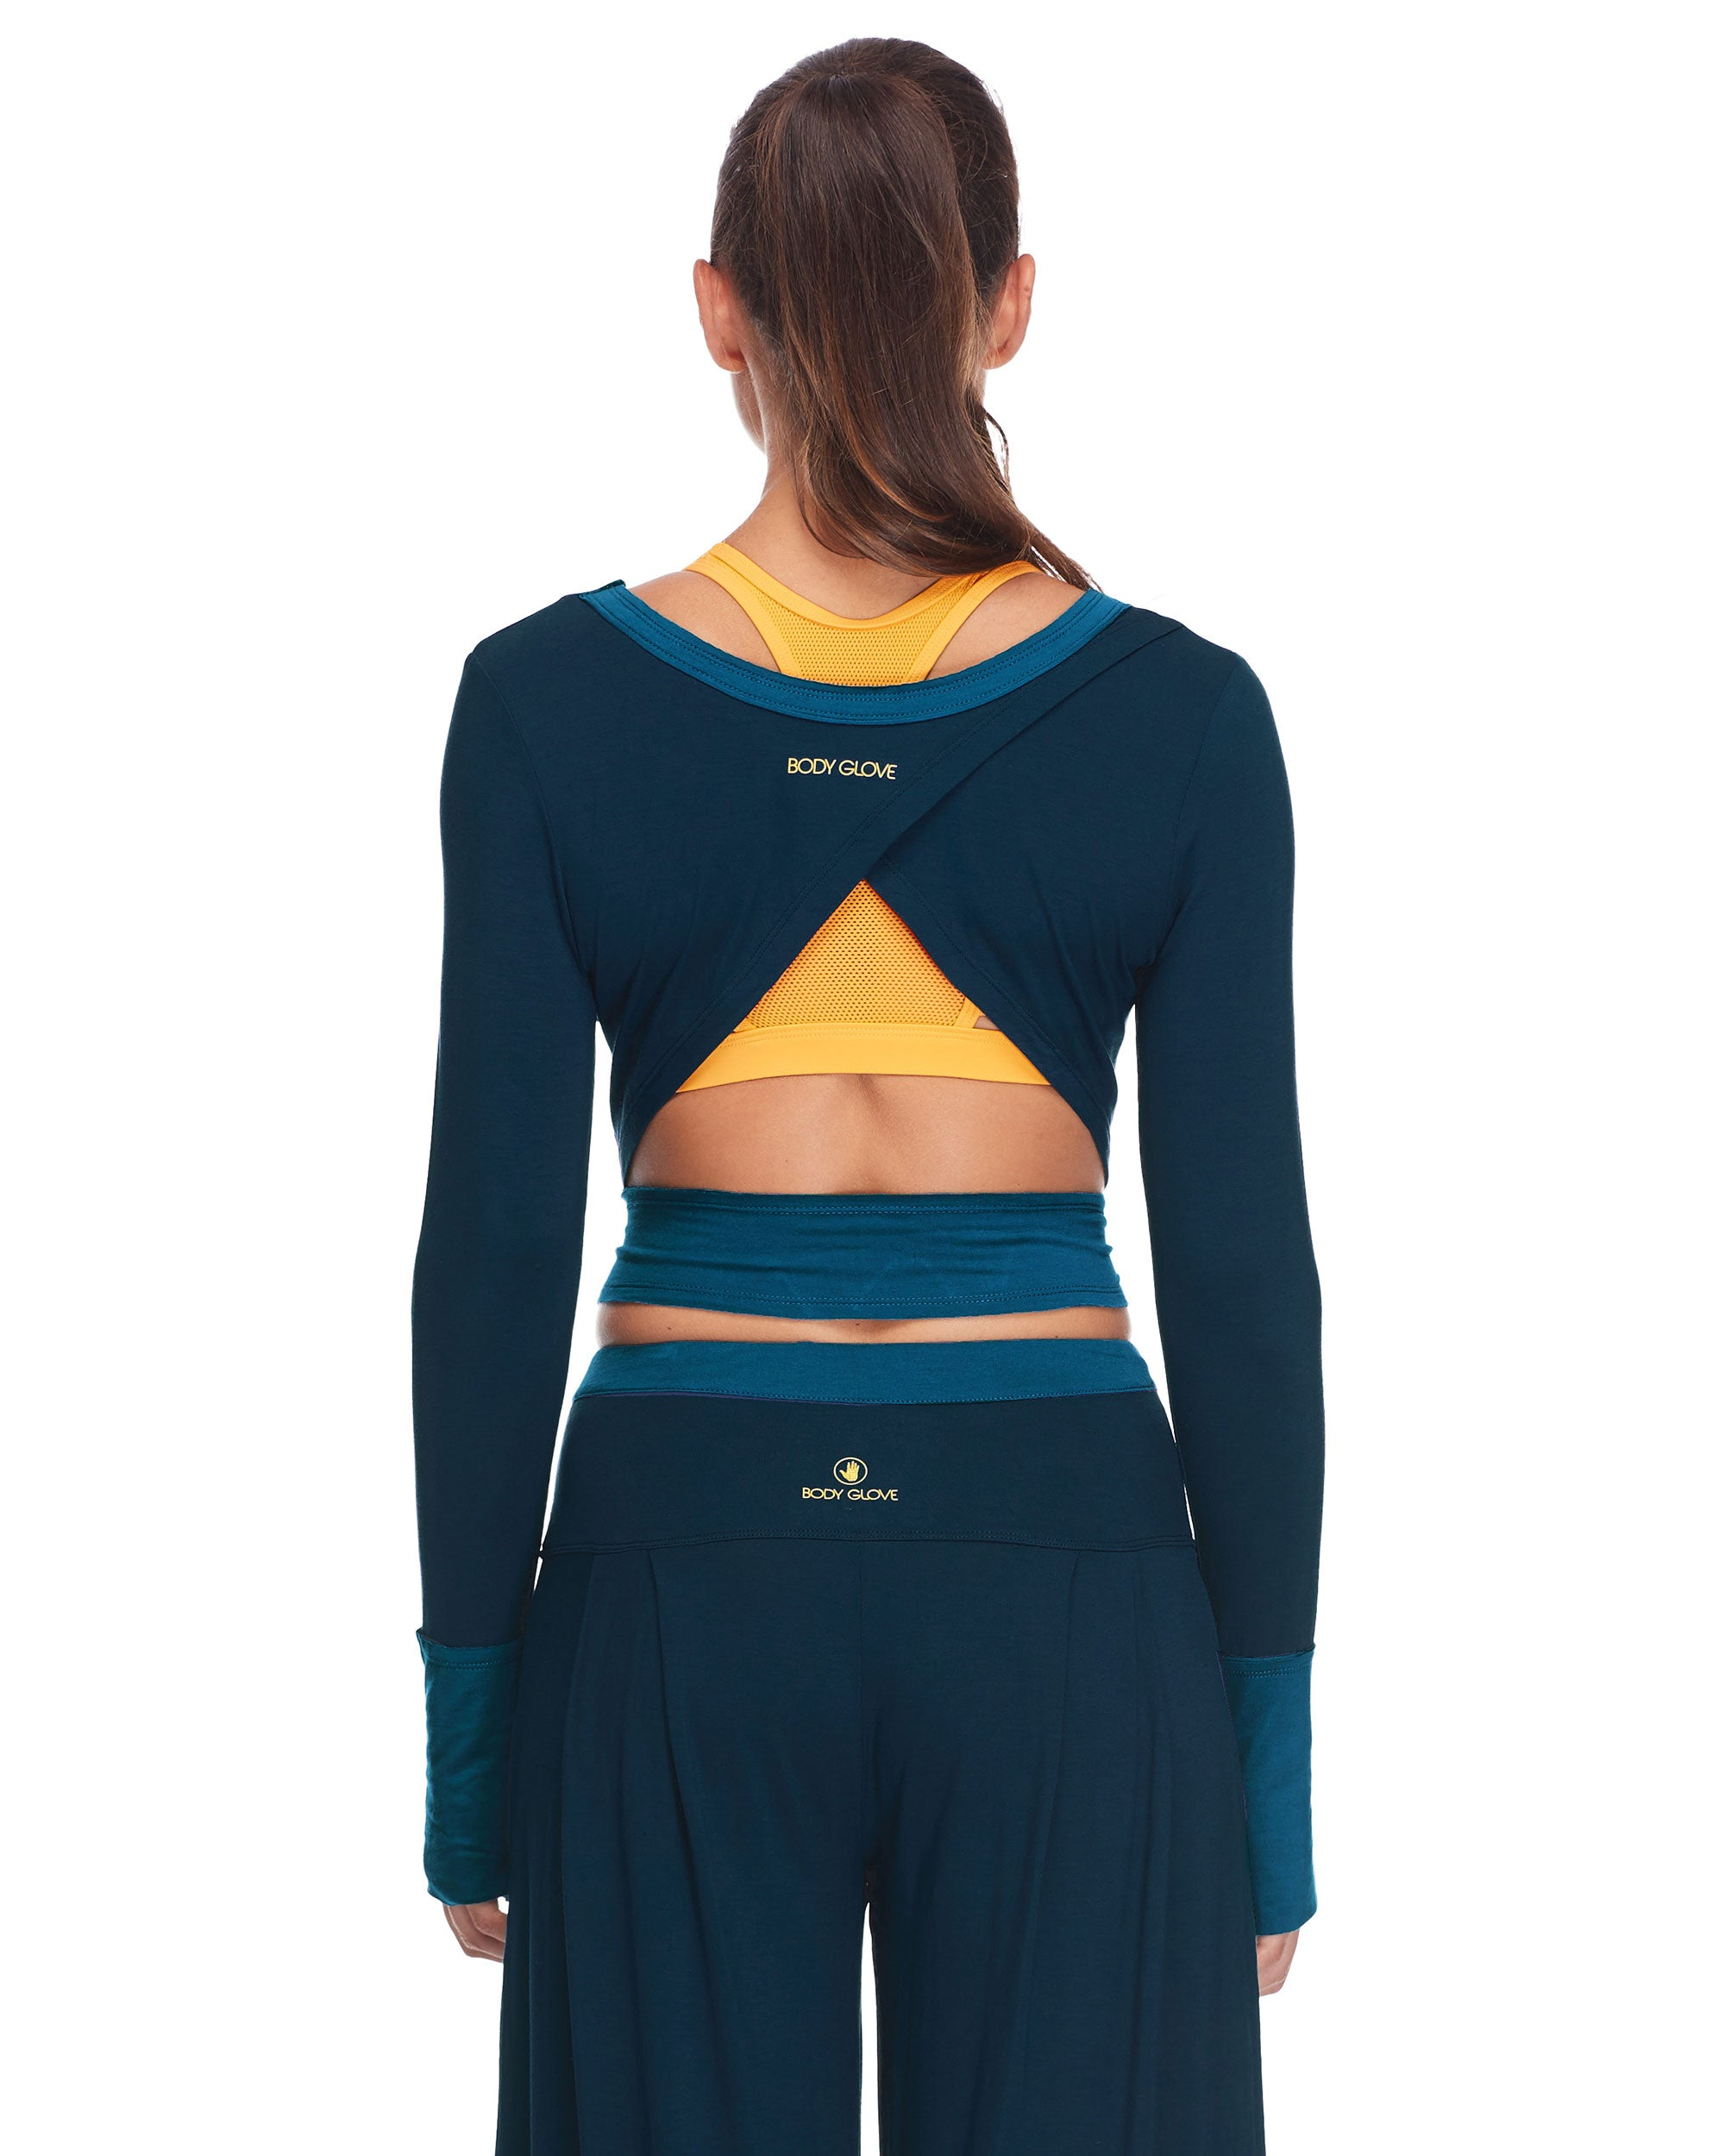 Body Glove Womens Astrid Fillted Long Sleeve Activewear Crop Top